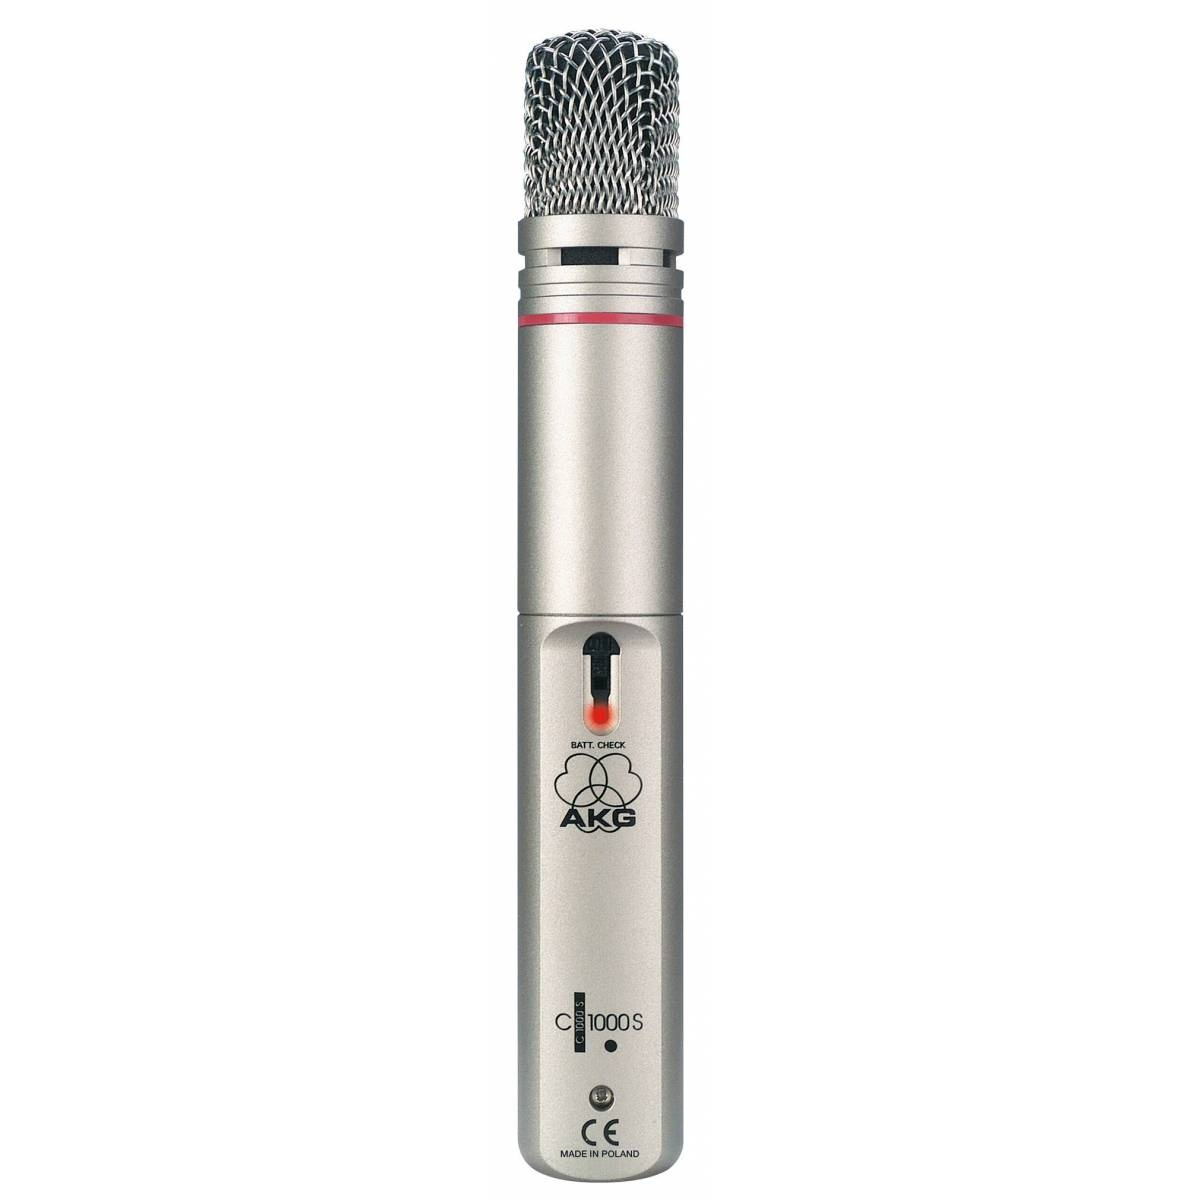 AKG C1000S Universal Recording Microphone